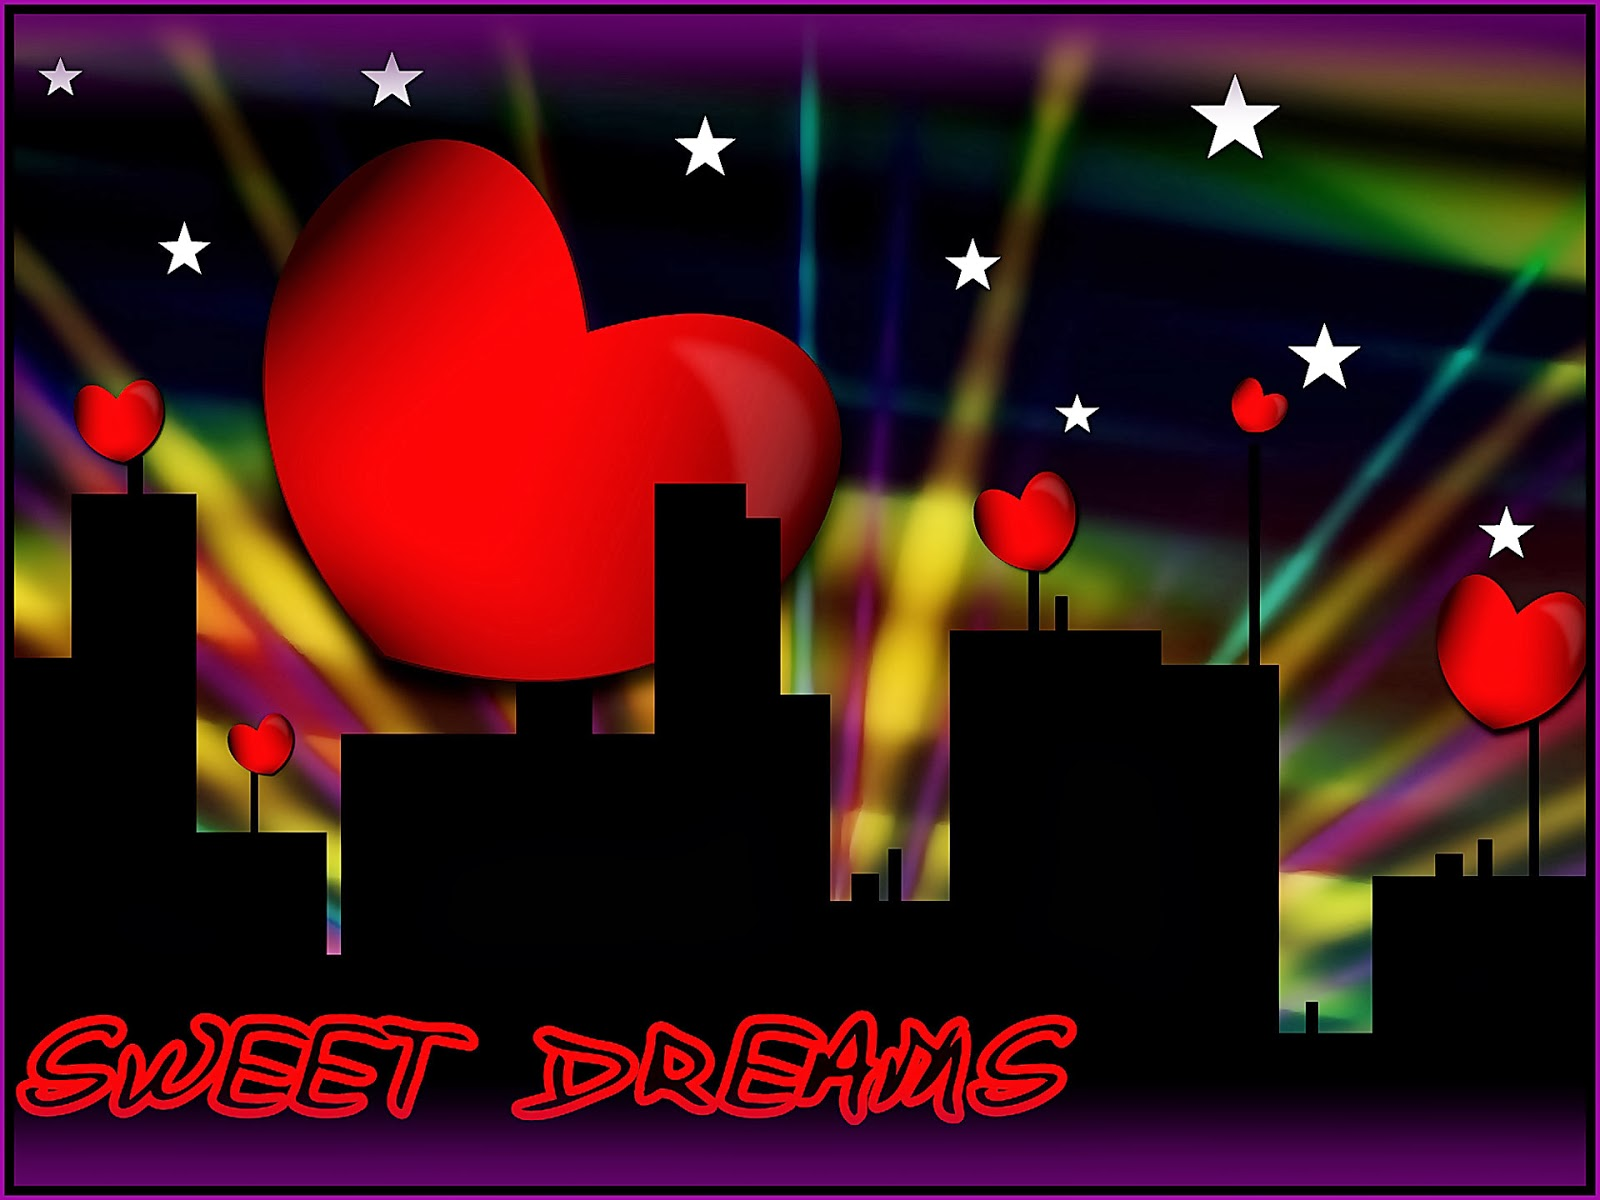 Good night hd wallpapers free download unique wallpapers tags good night hd wallpapers good night wallpaper free download good night photo pics of good night good night quotes hd wallpapers good night wishes voltagebd Images